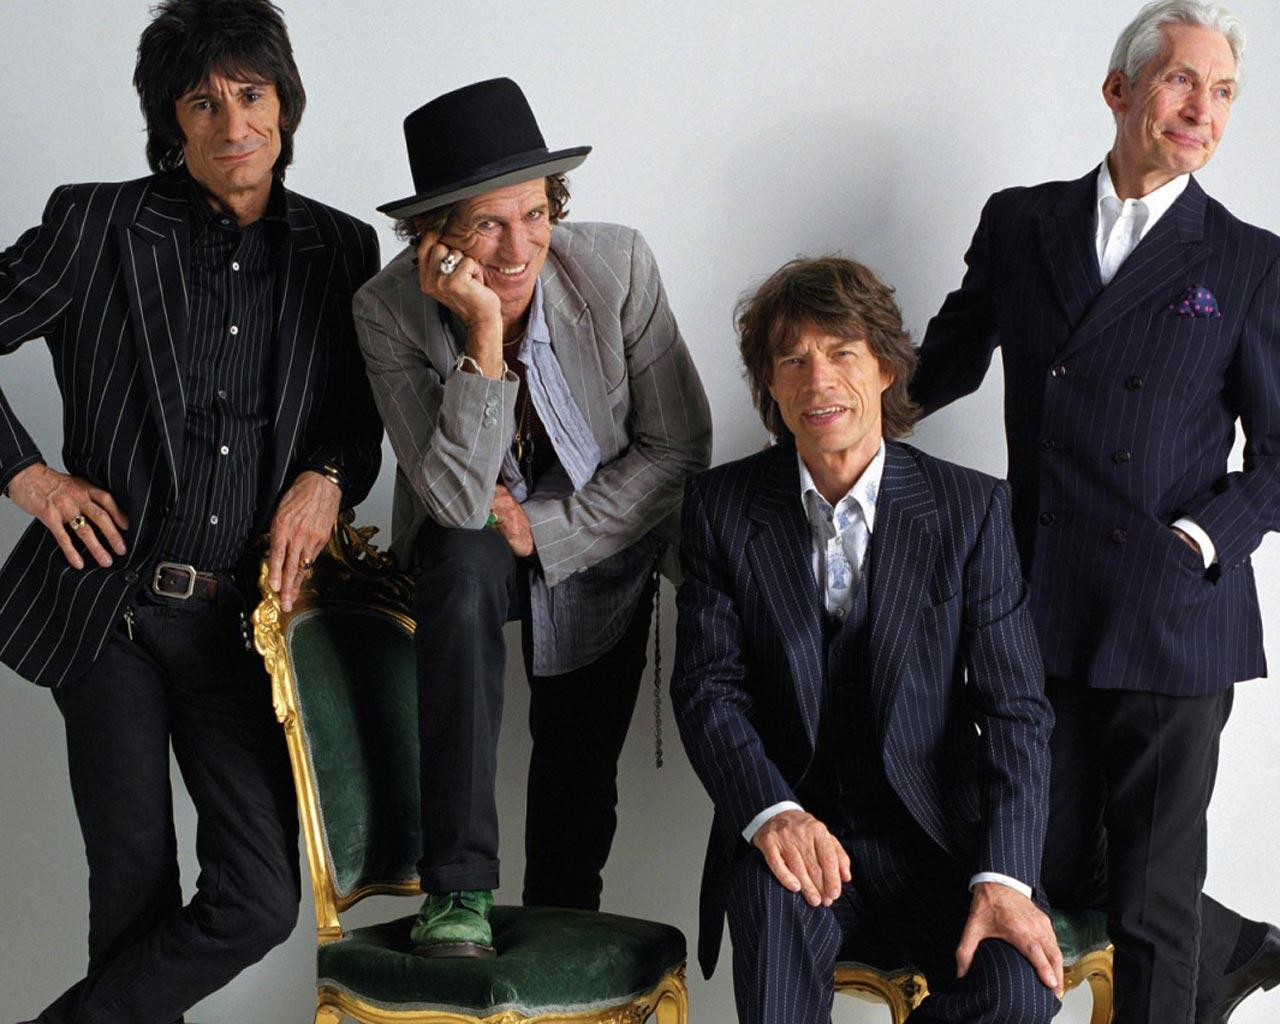 glastonbury-festival-2013-headlined-by-the-rolling-stones